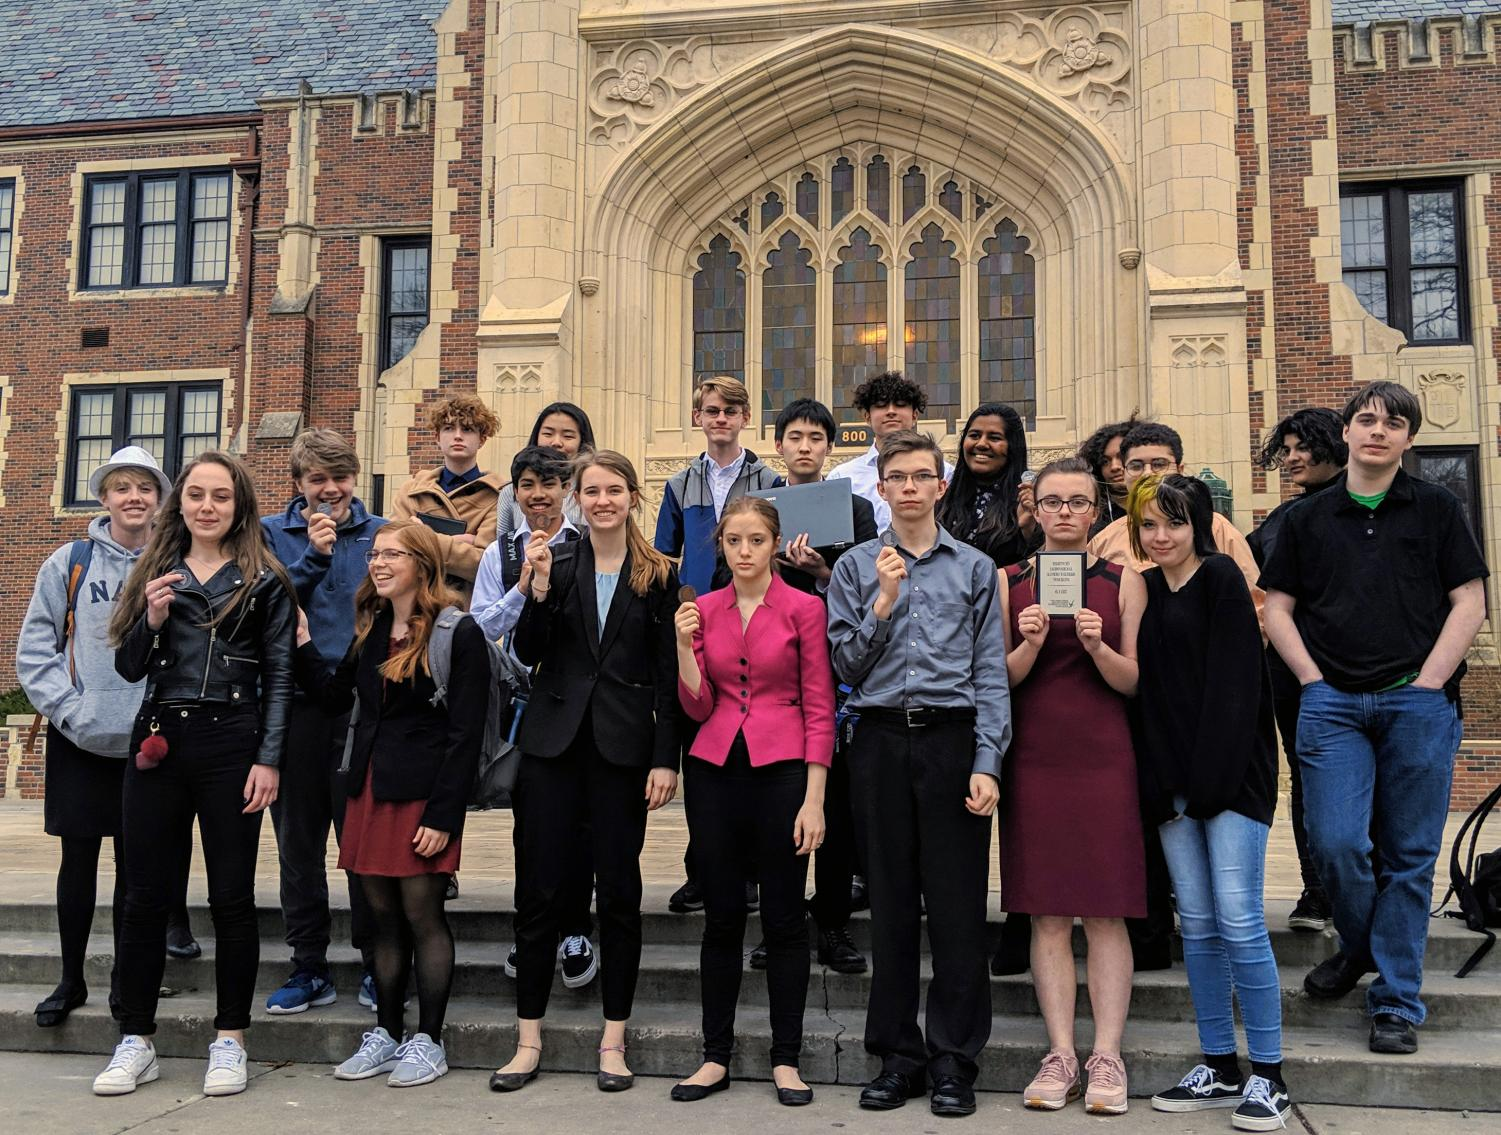 The Manhattan High Forensics team poses in front of Topeka High with their awards at their meet Saturday. The team took home another national qualification to make three total, as well as another state qualification to adorn their wall. Photo courtesy of